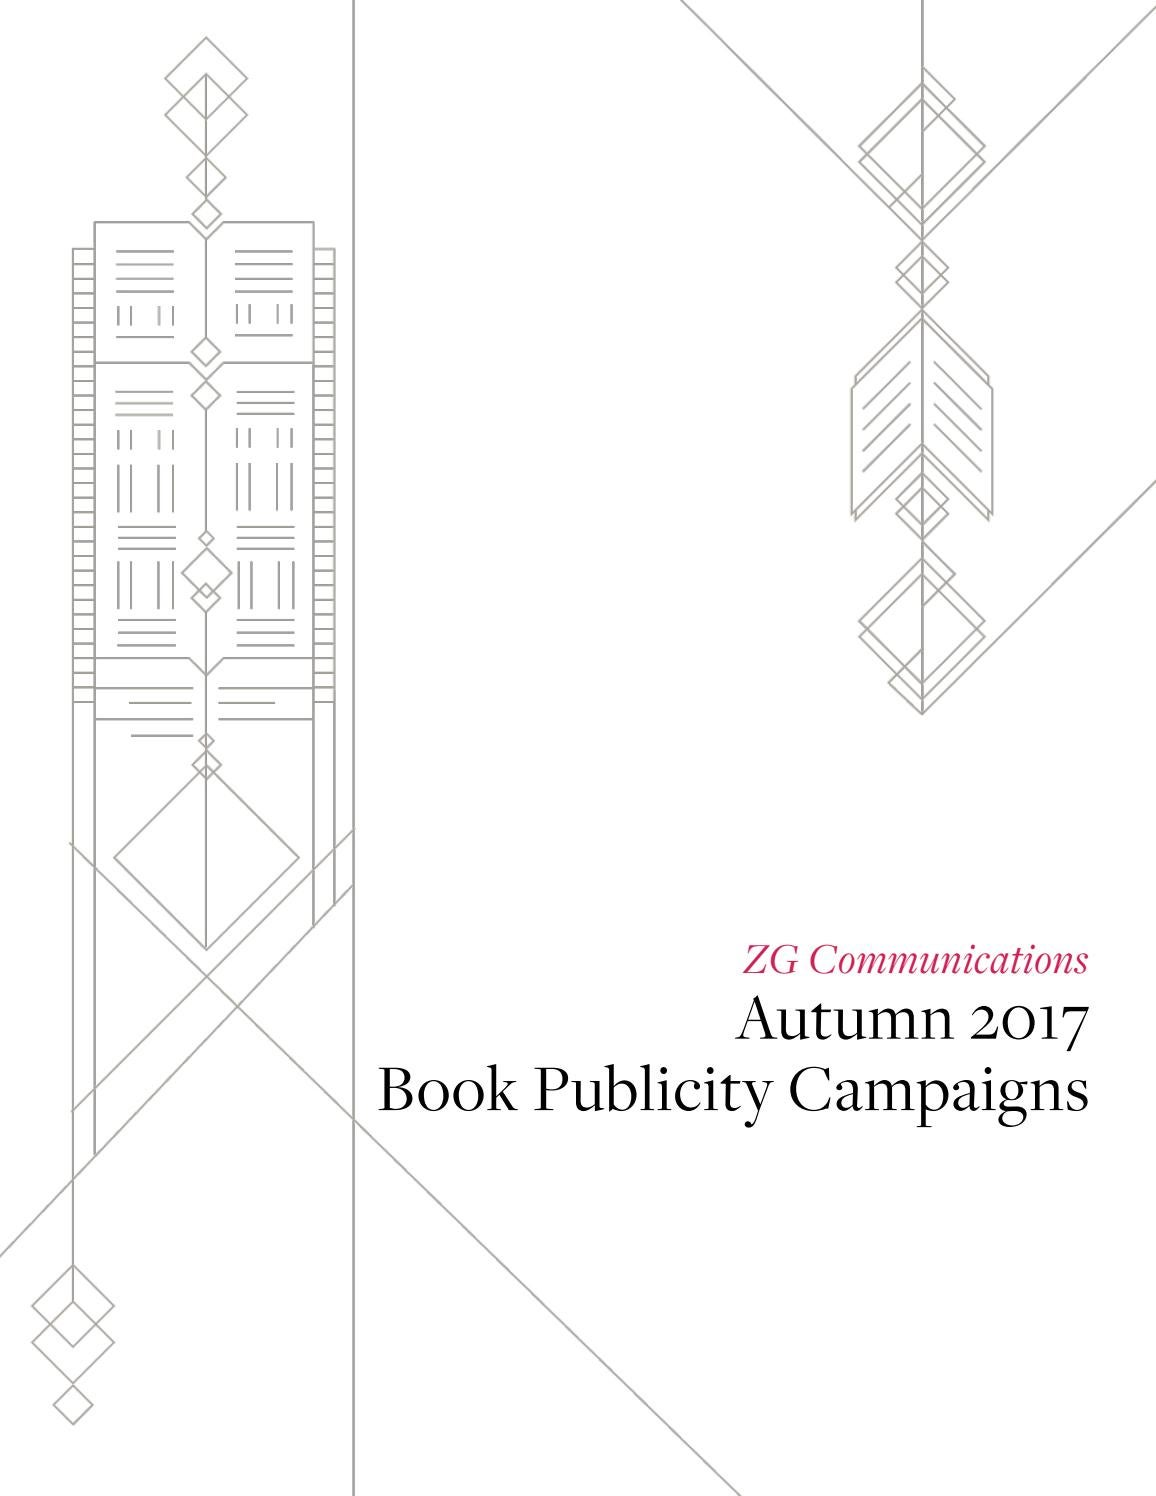 ZG Communications: Autumn Book Publicity Campaigns Summary